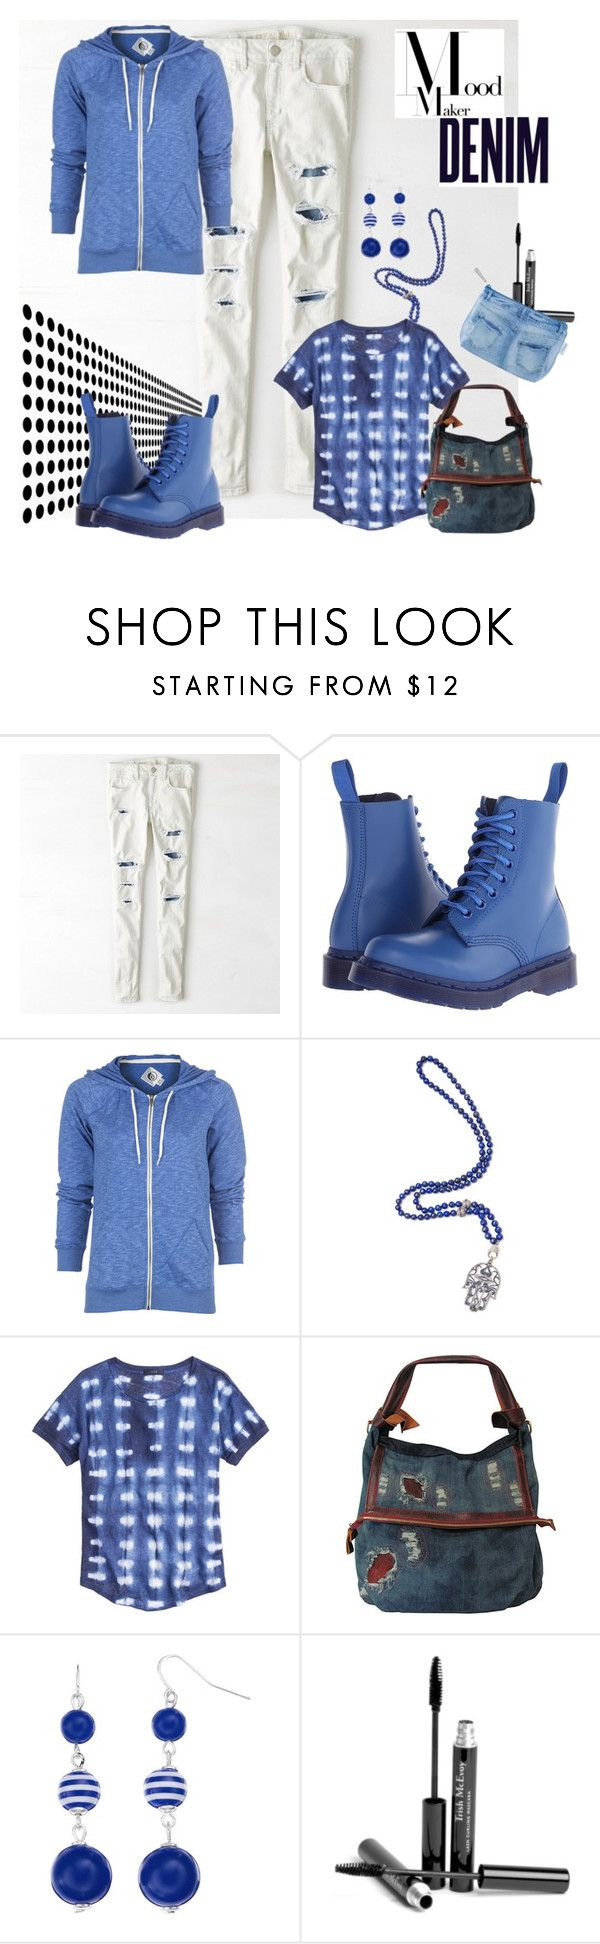 """""""Moodmaker Denim"""" by armband ❤ liked on Polyvore featuring American Eagle Outfitters, Dr. Martens, Volcom, CB Bronfman, J.Crew, AmeriLeather, Croft & Barrow, Alima, Trish McEvoy and Catseye London"""